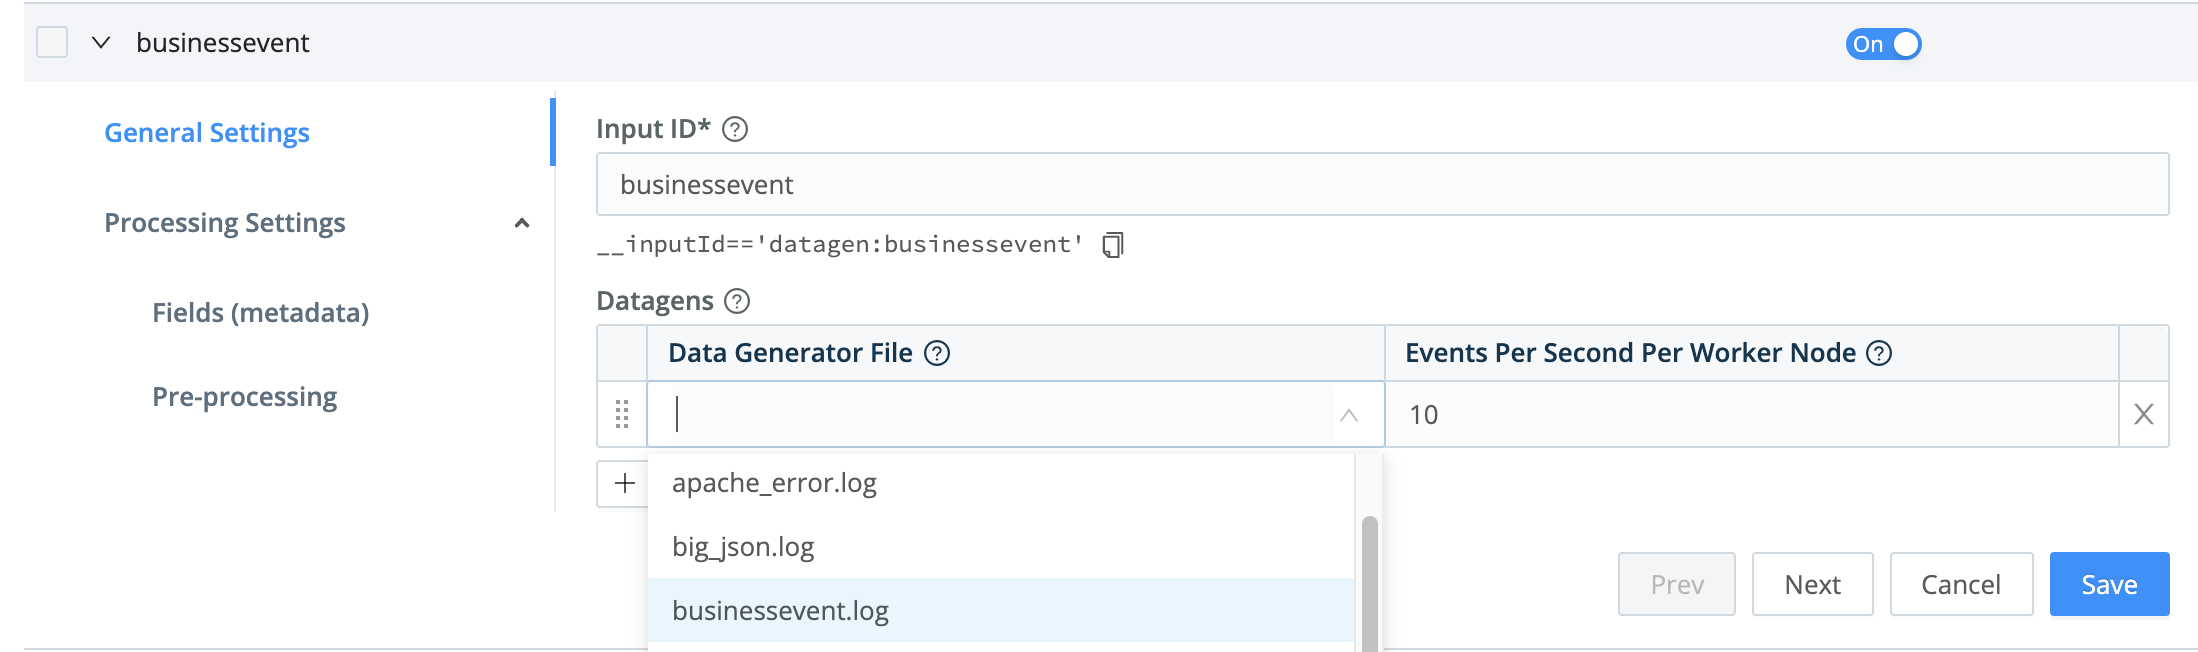 Configuring a datagen Source